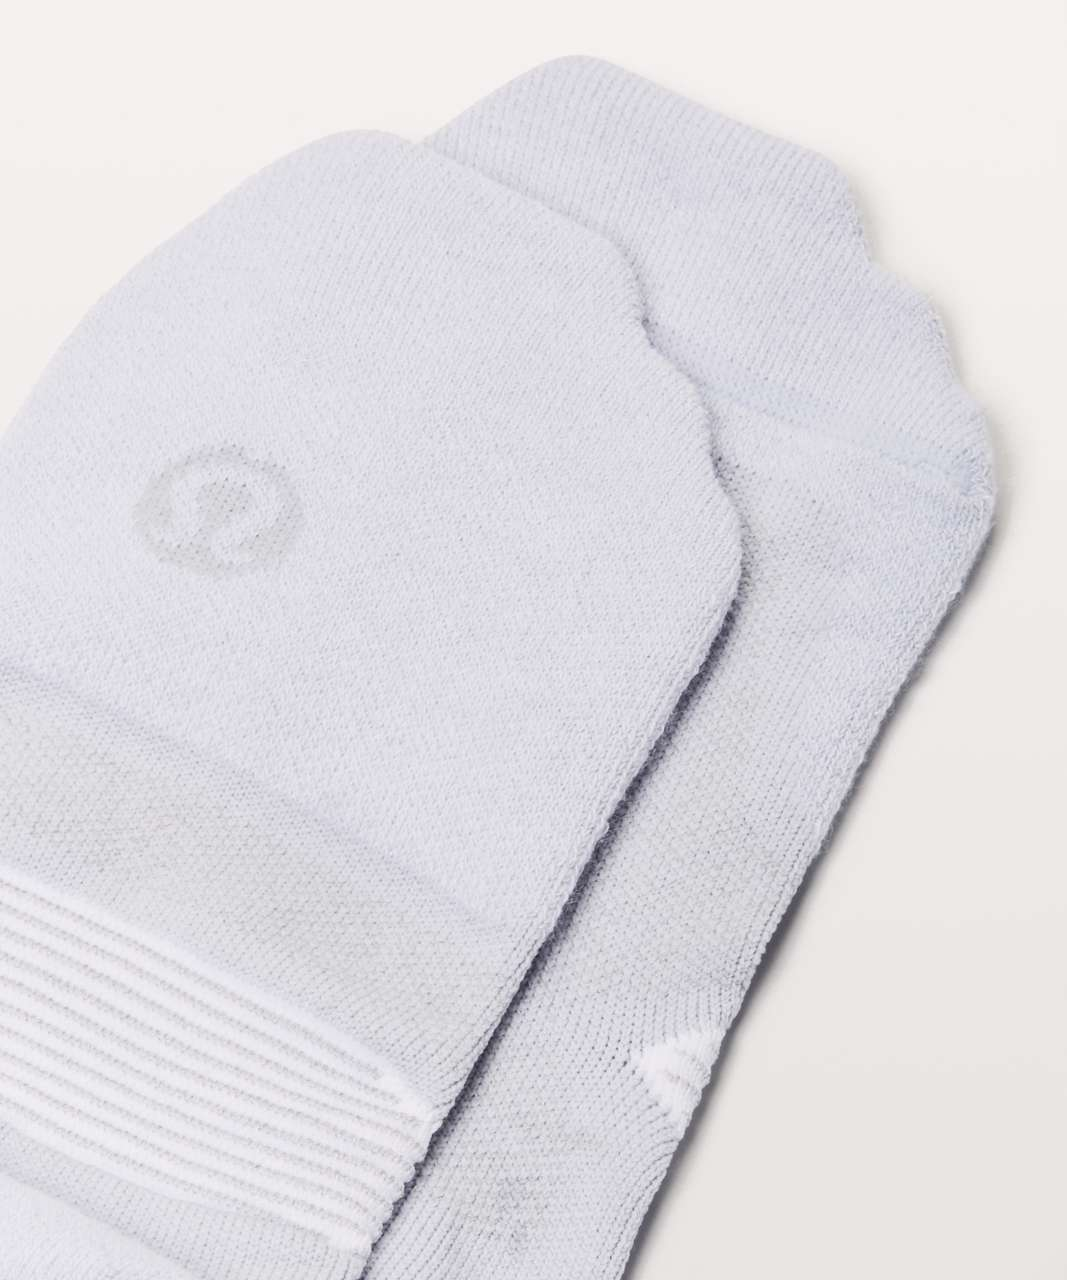 Lululemon Speed Sock *Silver - Serene Blue / White